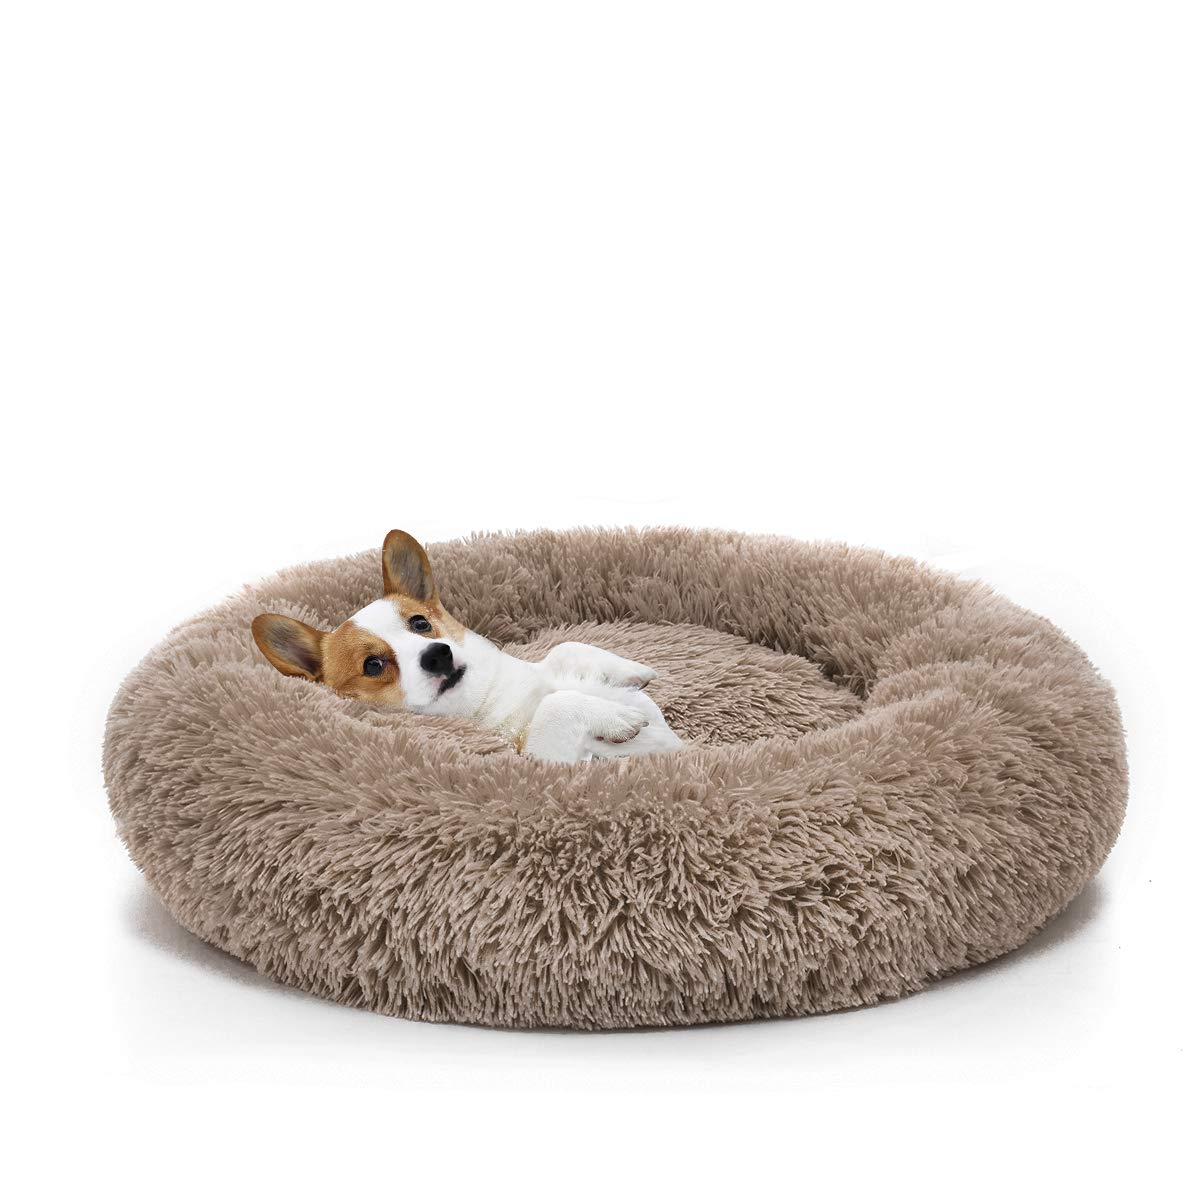 Orthopedic Dog Bed Comfortable Donut Cuddler Round Dog Bed Ultra Soft Washable Dog and Cat Cushion Bed (23''x 23''x 5'') (Brown)